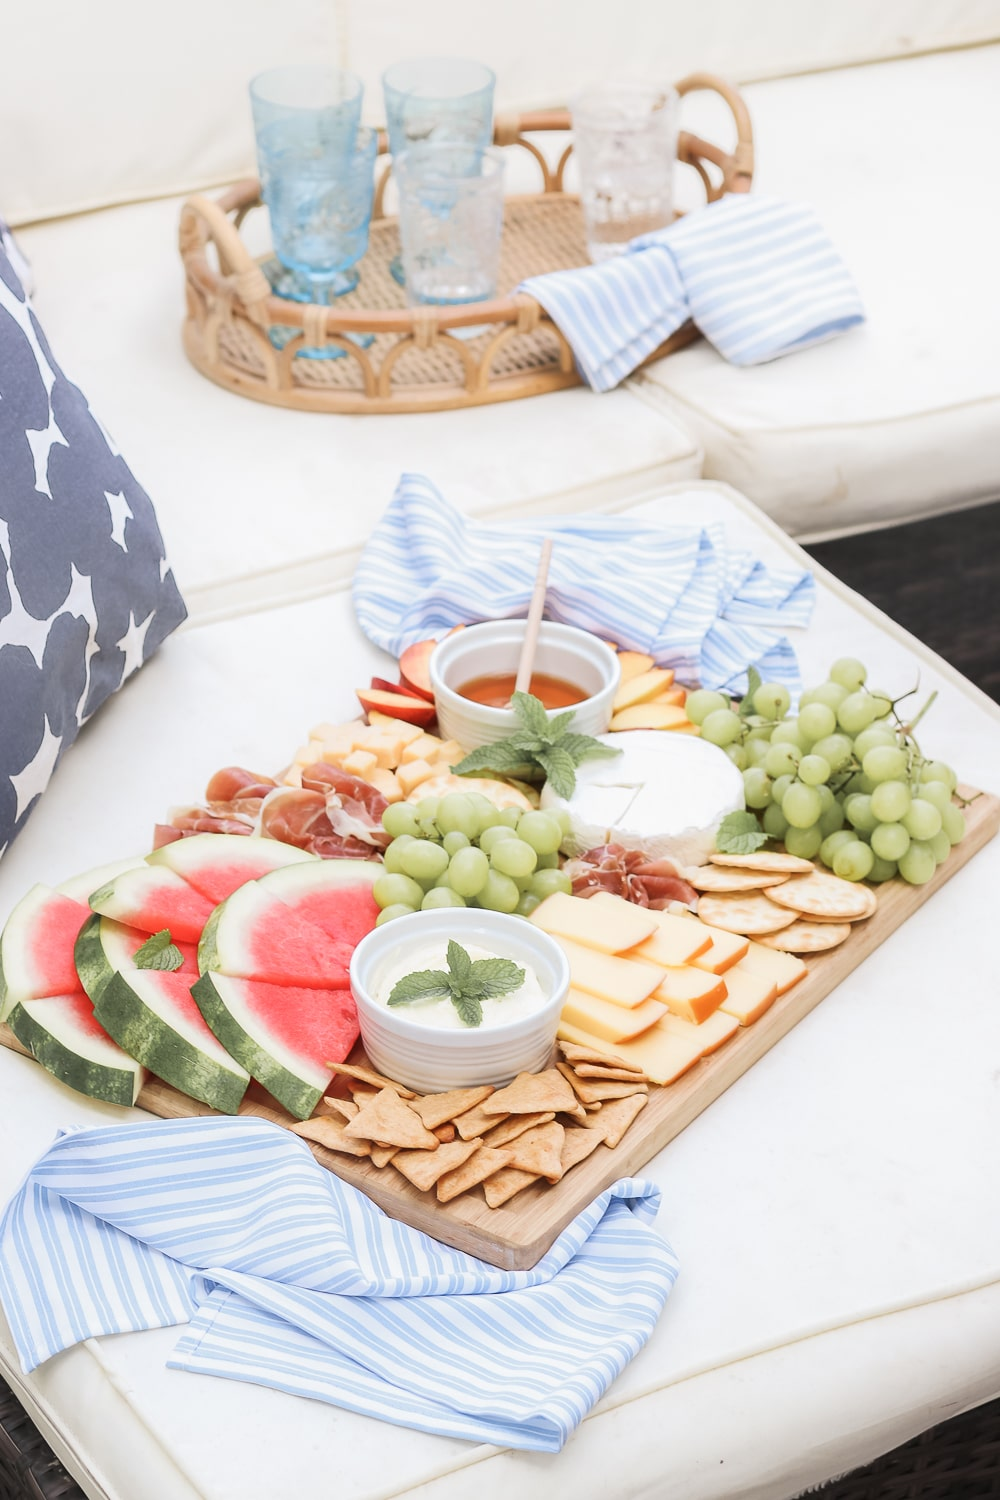 Easy charcuterie tips for summer from blogger Stephanie Ziajka on Diary of a Debutante